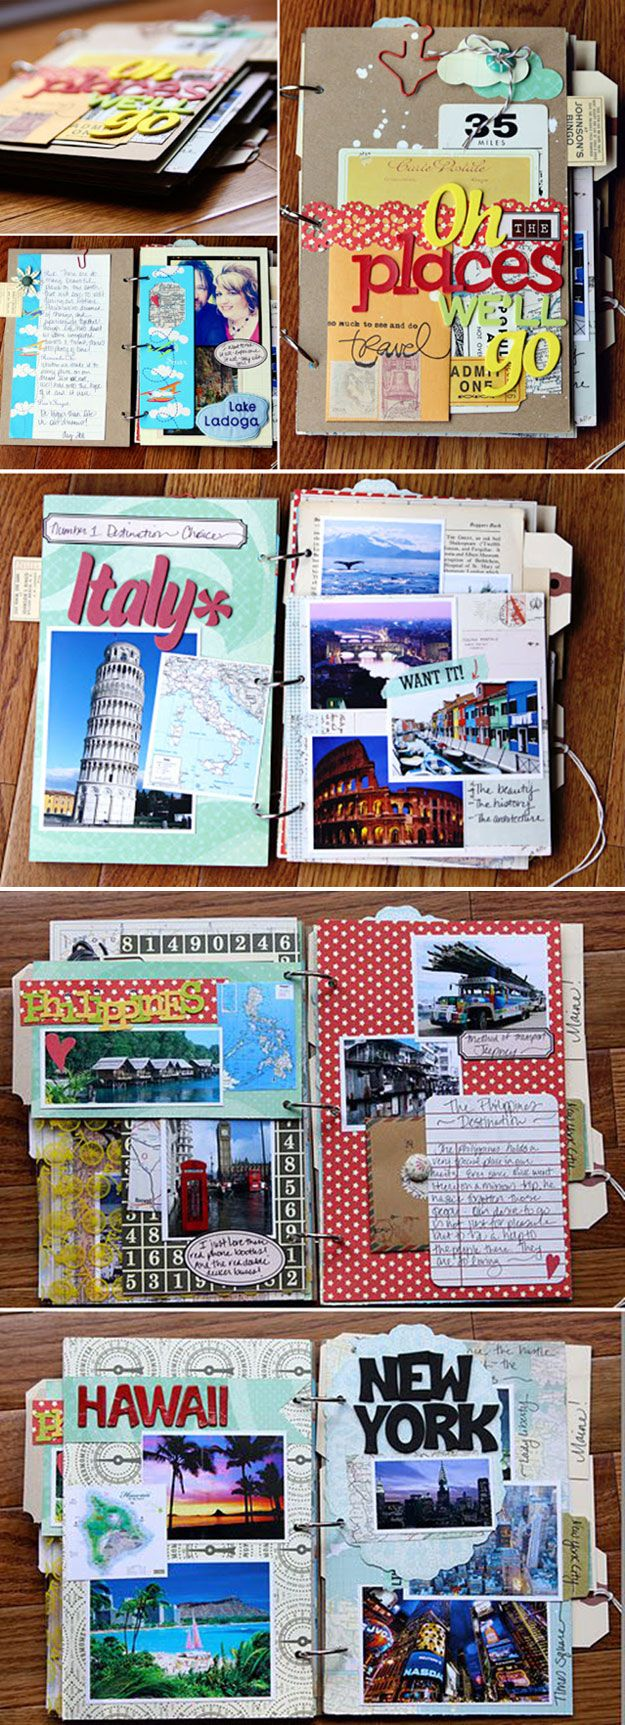 How to scrapbook on a budget